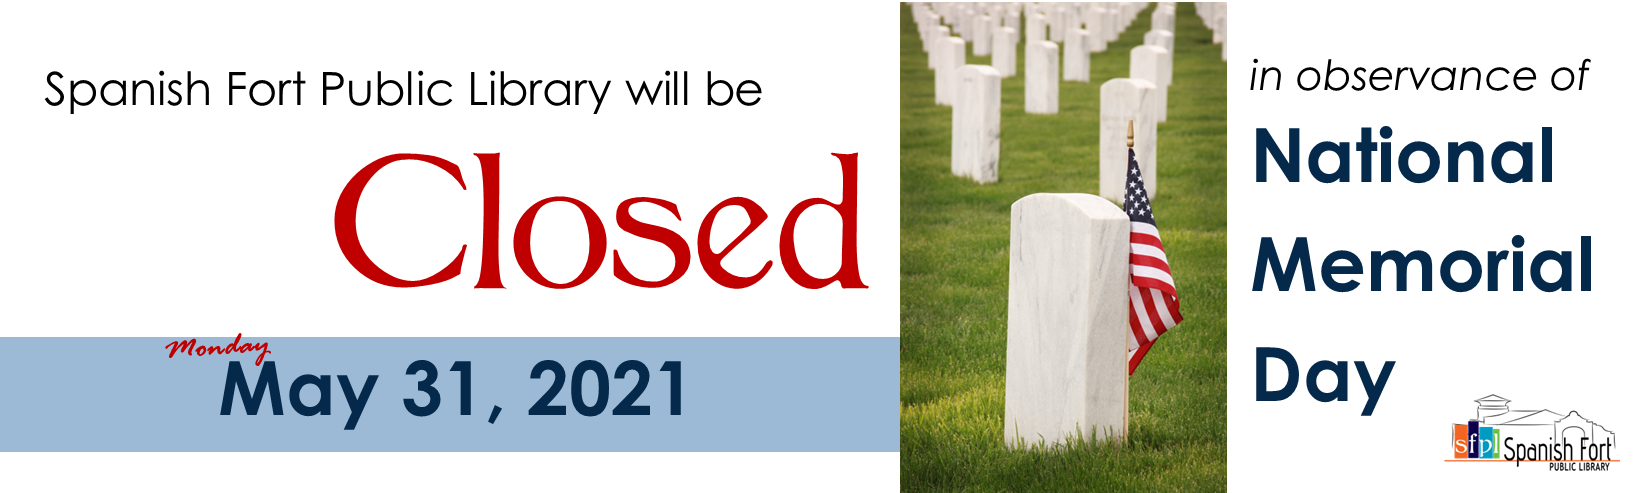 Spanish Fort Public Library will be closed Monday, May 31, 2021 in observance of National Memorial Day 2021